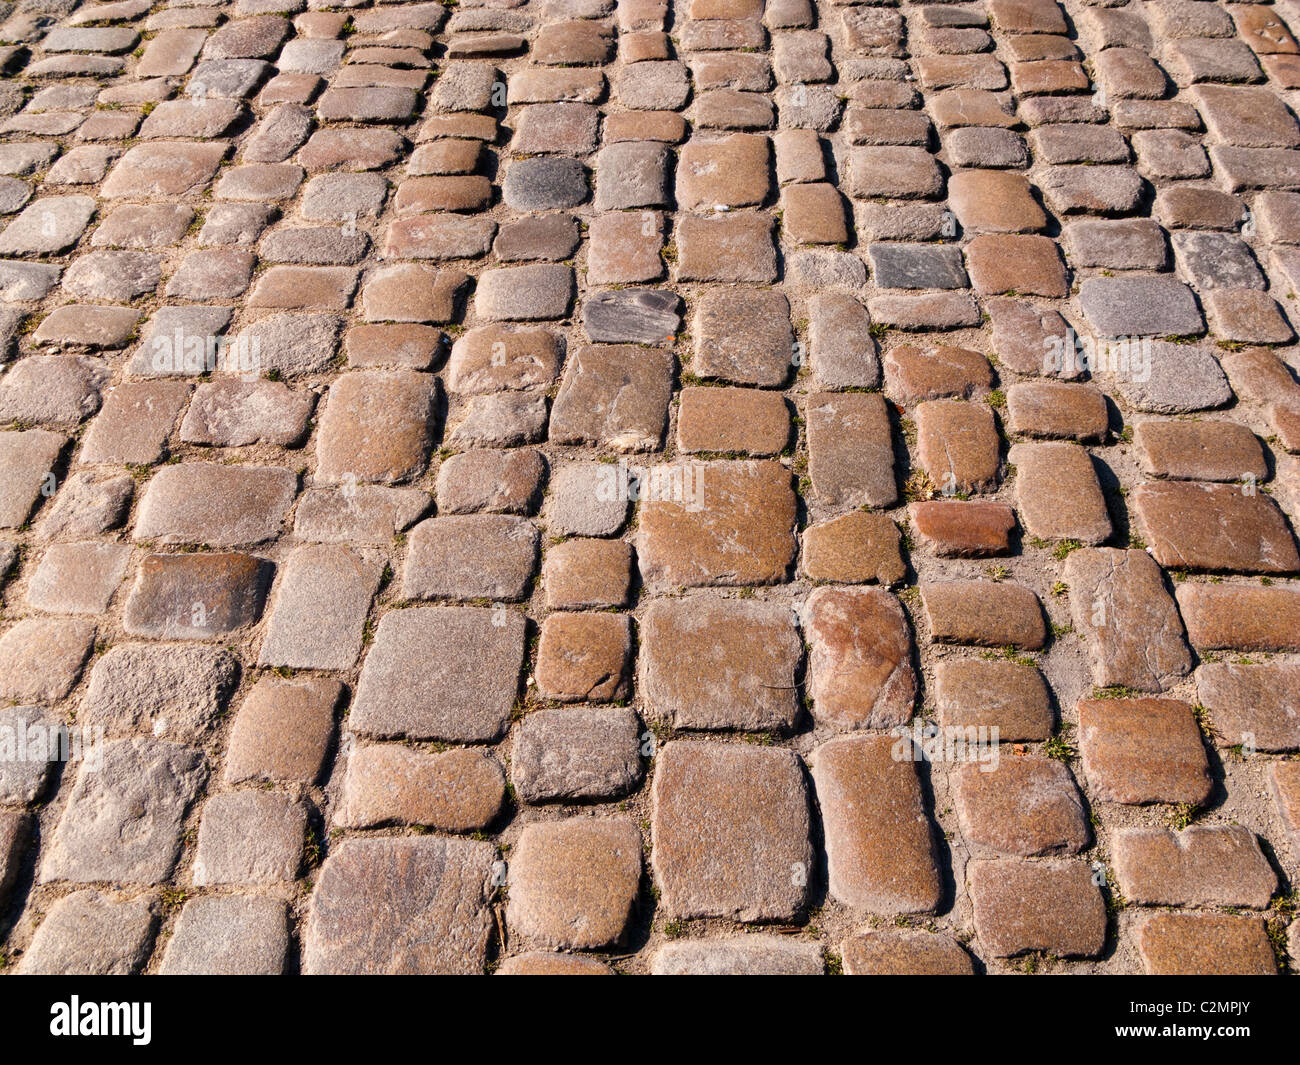 Cobble stones on an old cobbled street close up, UK - Stock Image